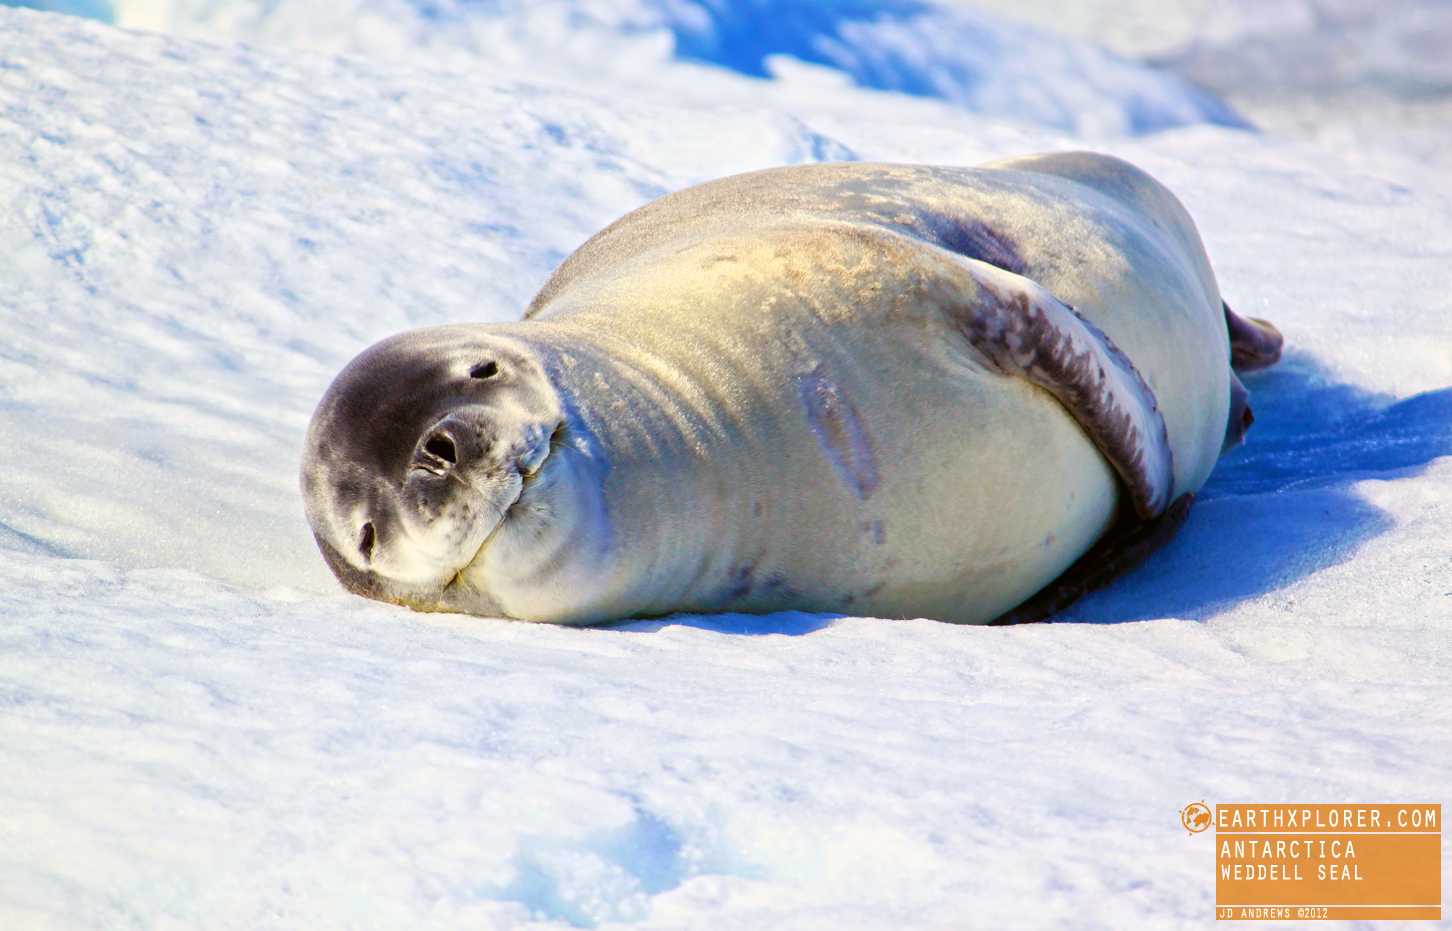 The Weddell seal was discovered and named in the 1820s during expeditions led by James Weddell, the British sealing captain, to the parts of the Southern Ocean now known as the Weddell Sea